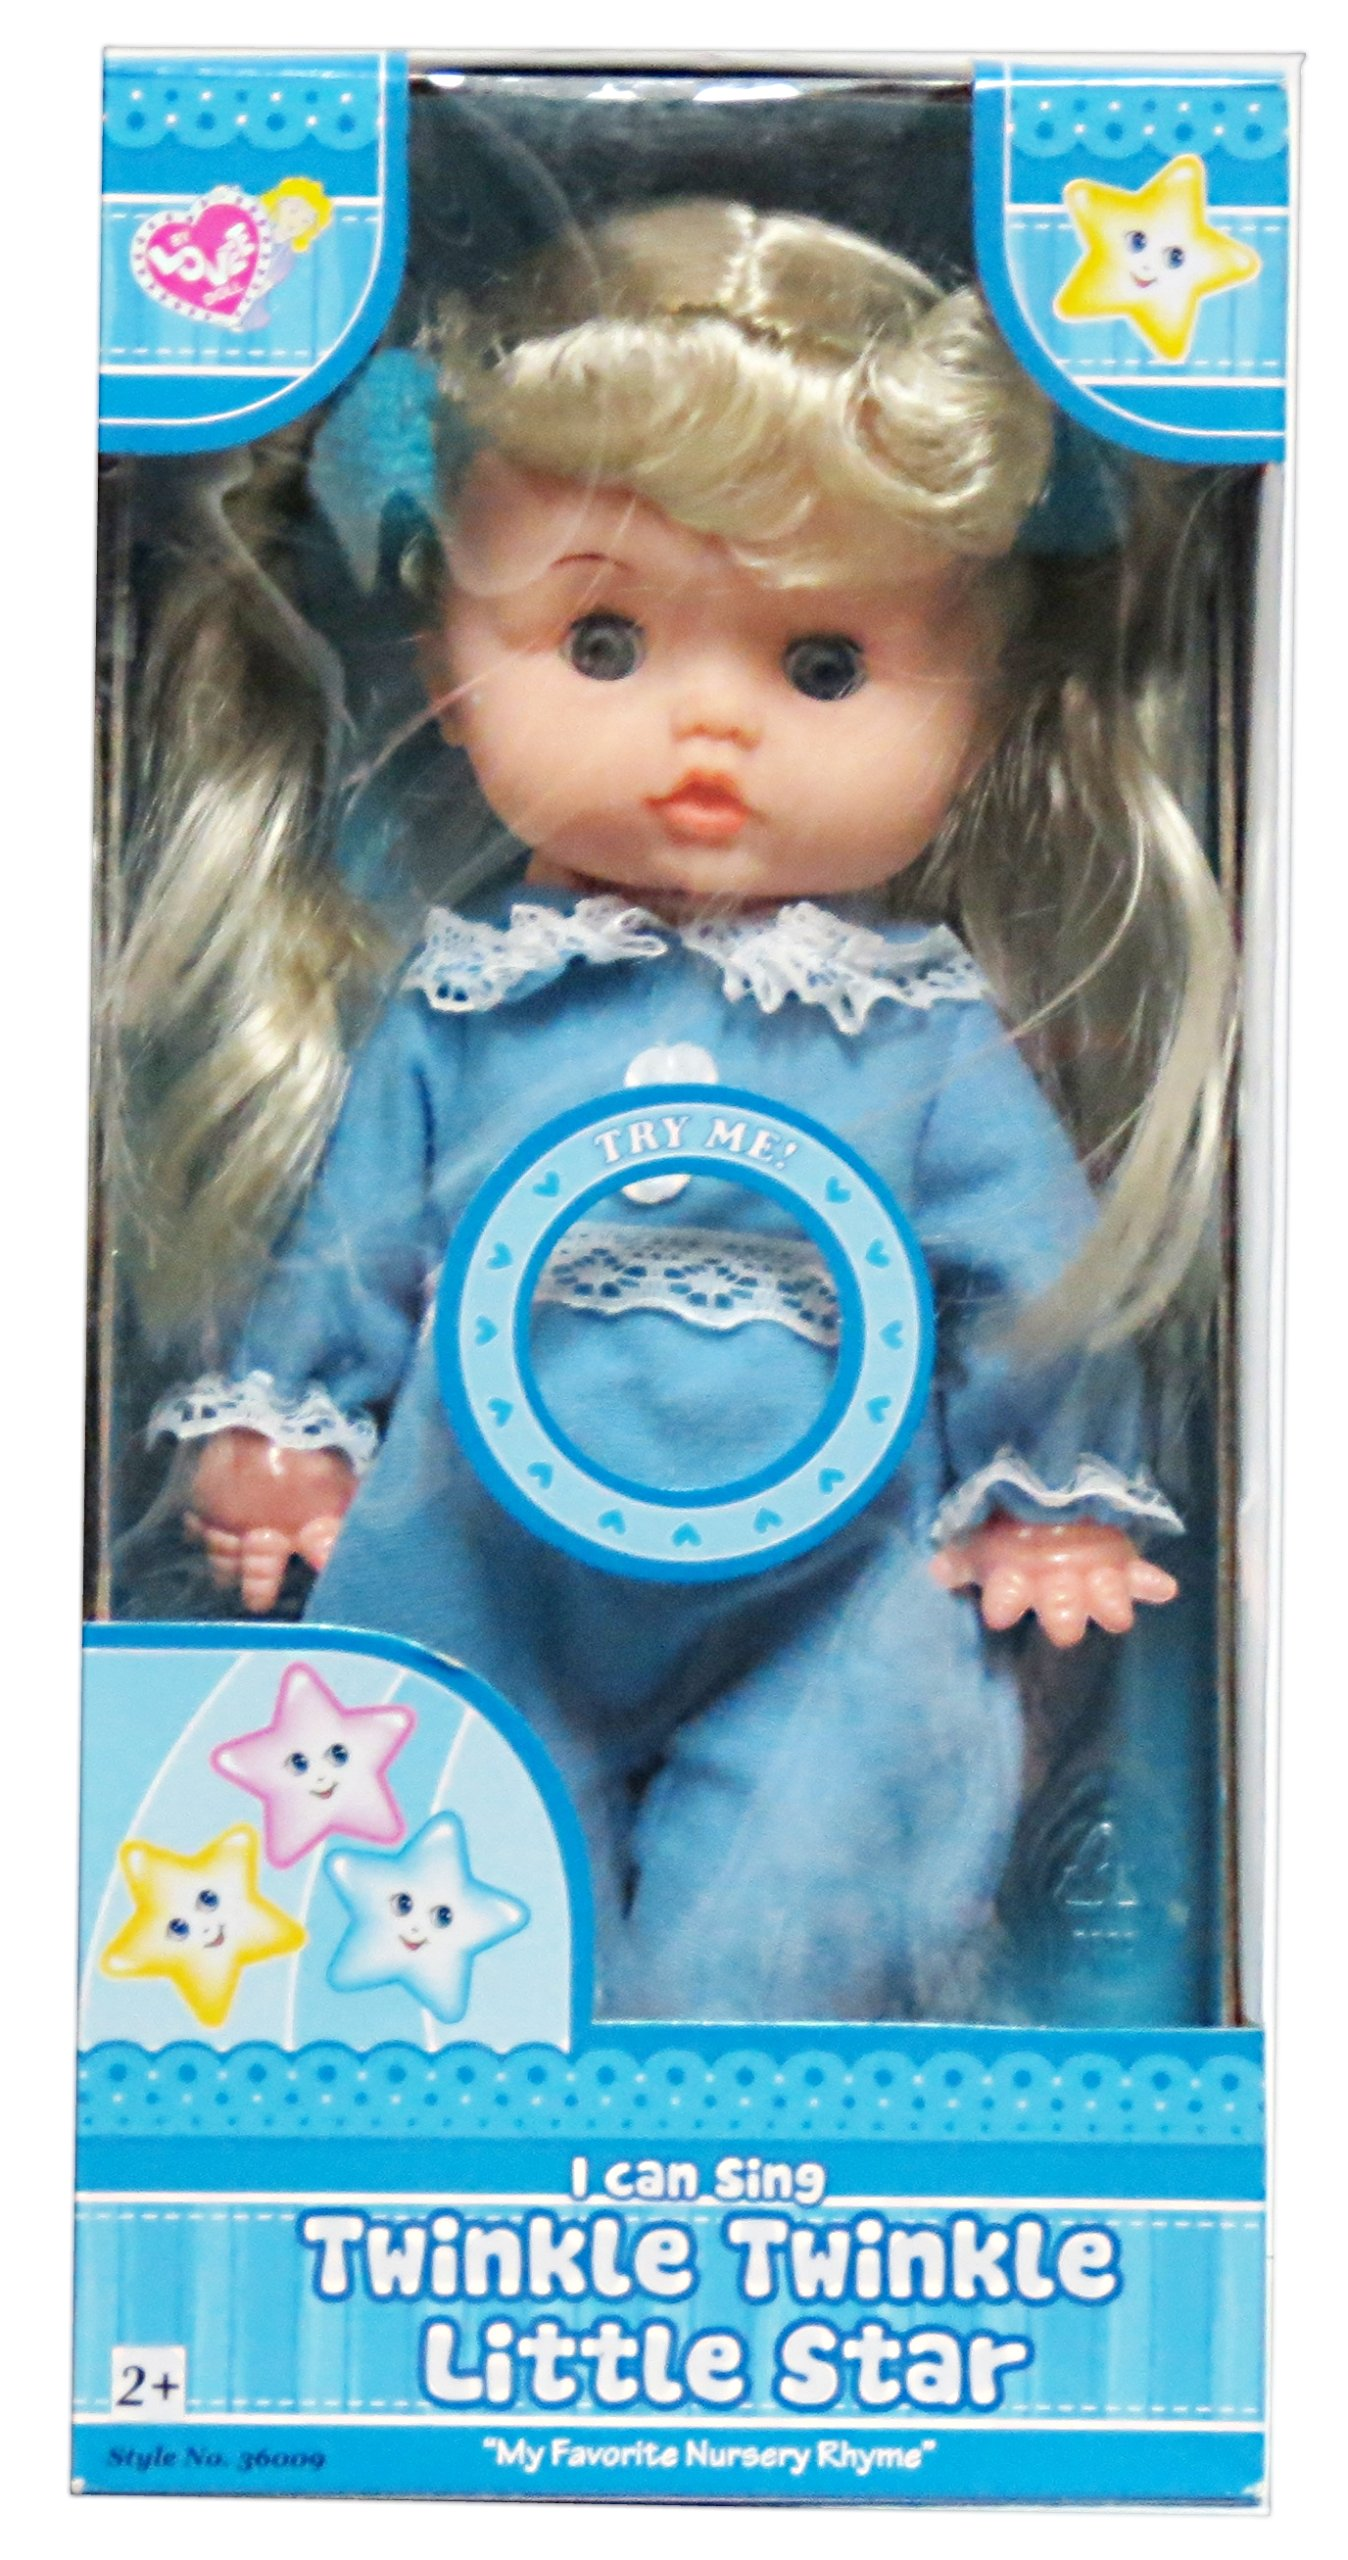 Lovee Doll Amp Toy Co : Lovee doll sings quot twinkle little star baby